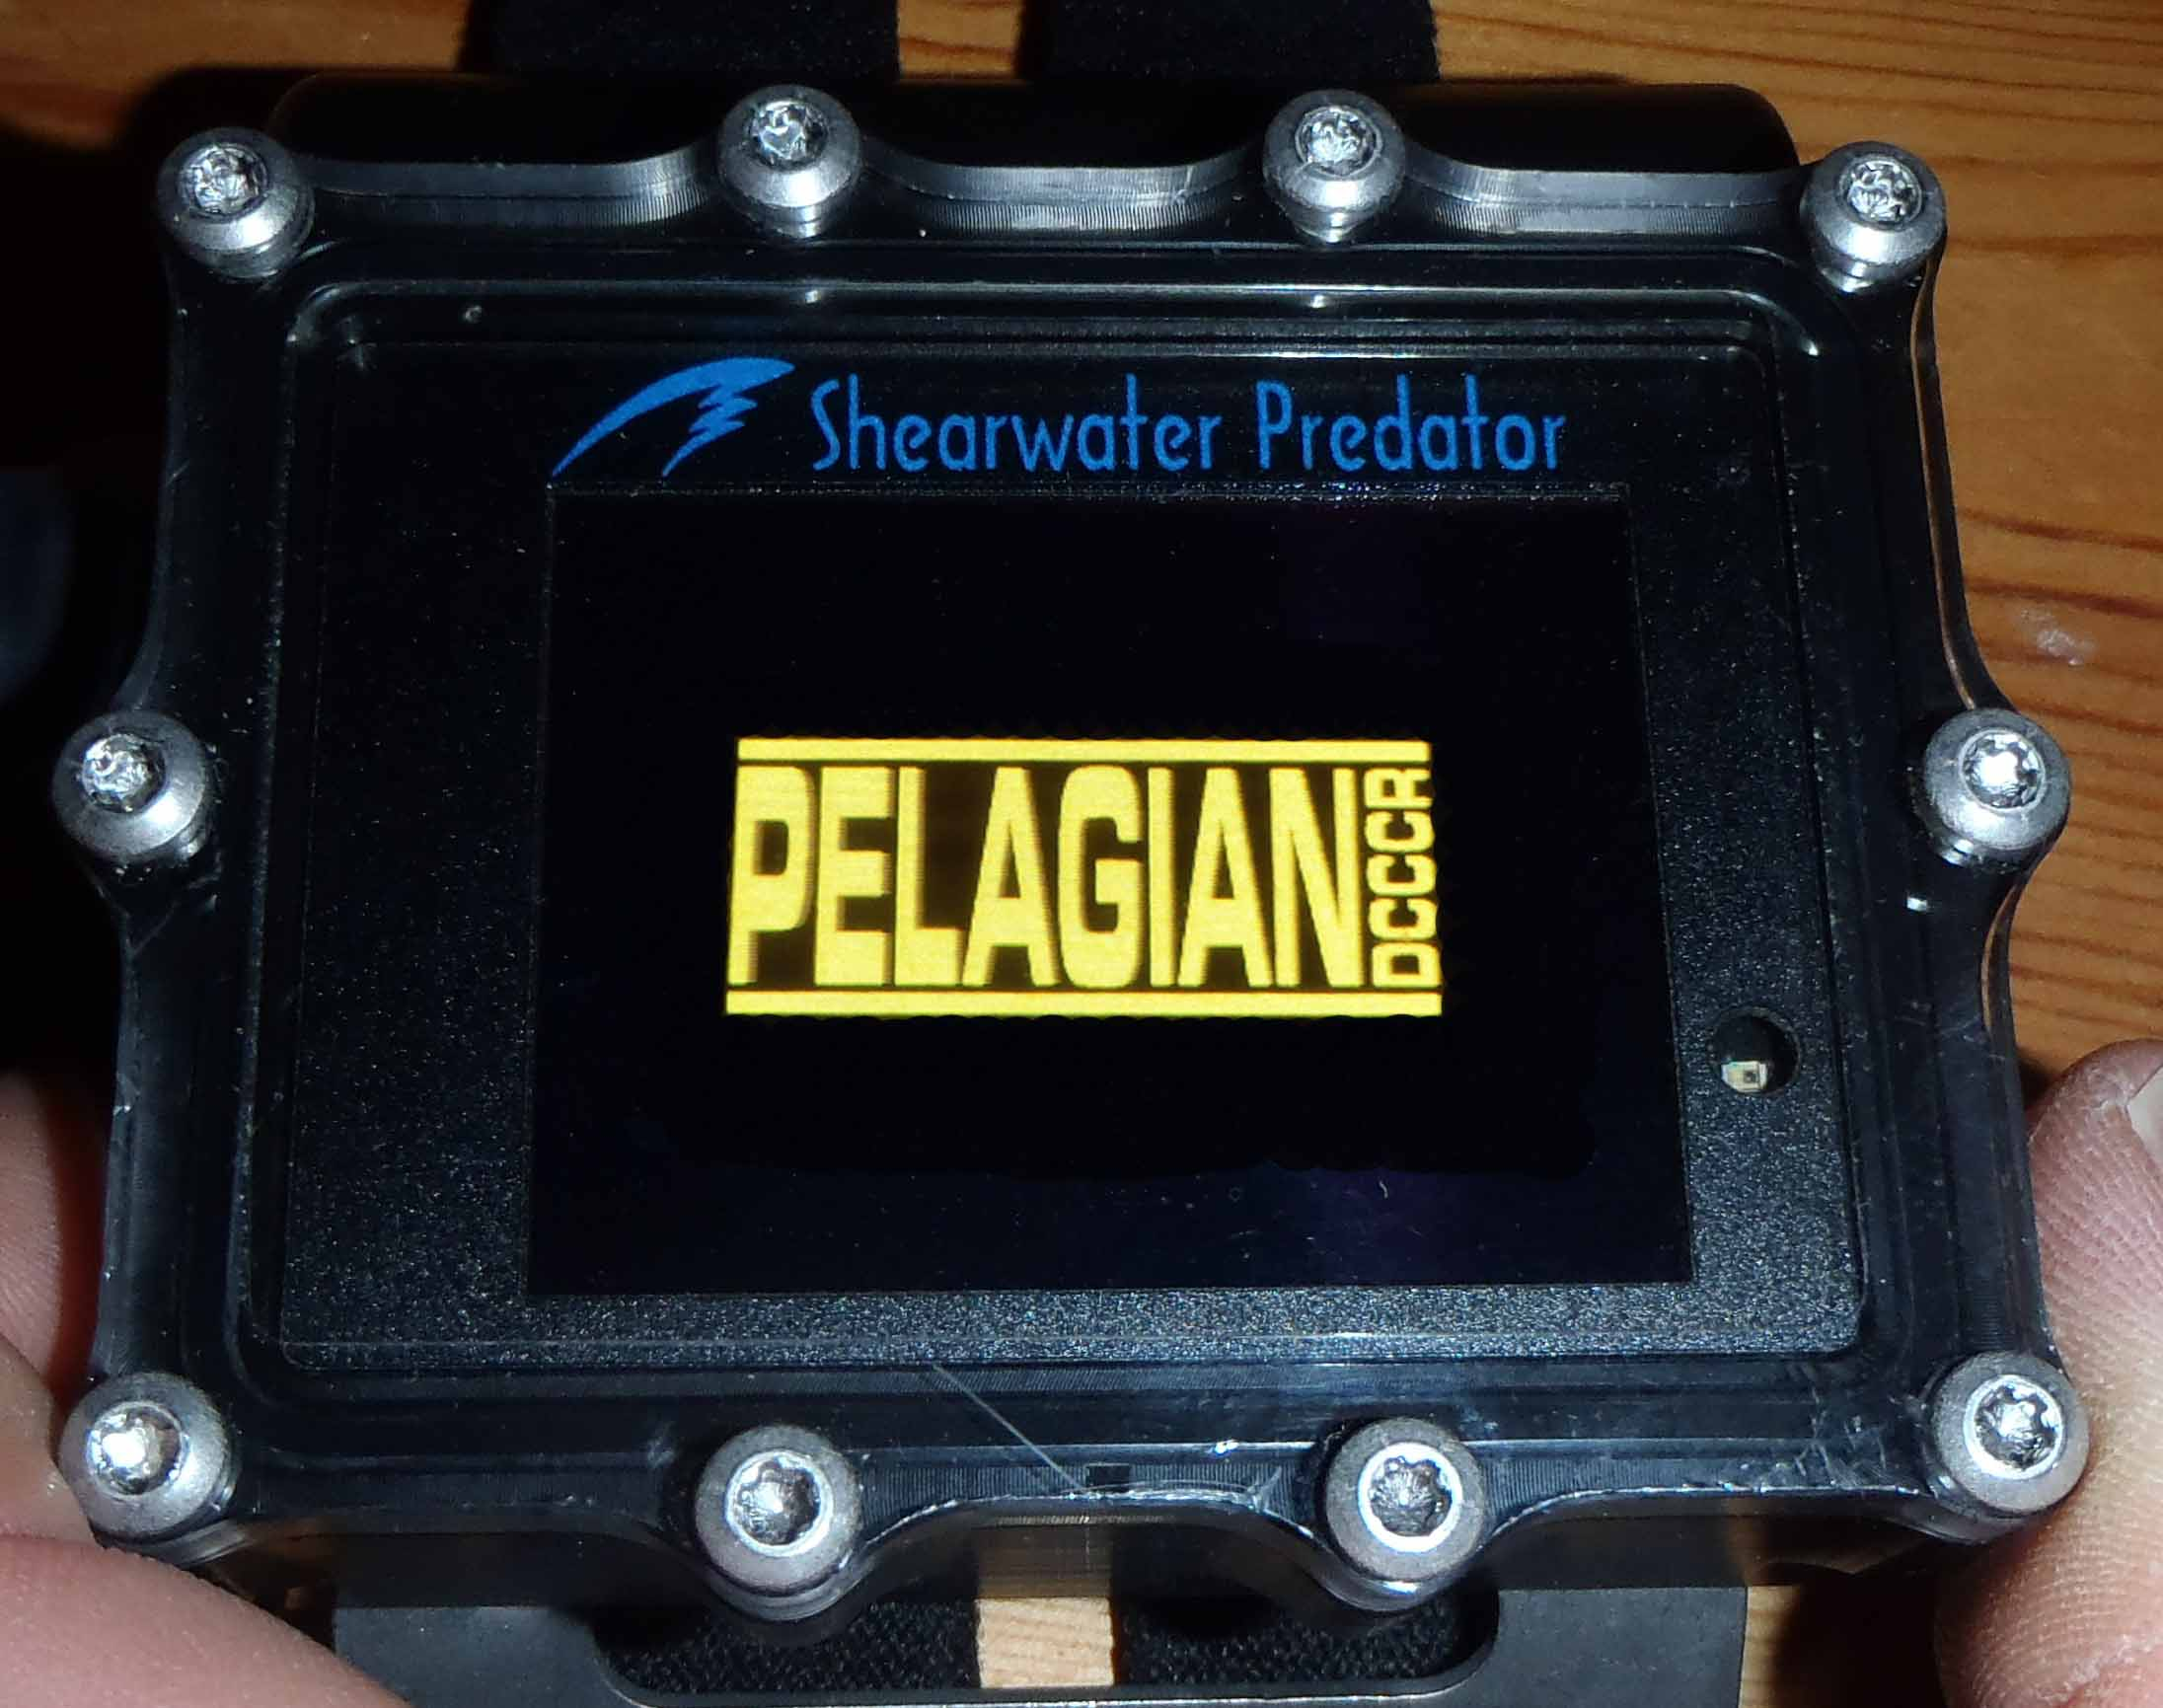 Optional Shearwater Predator Computer